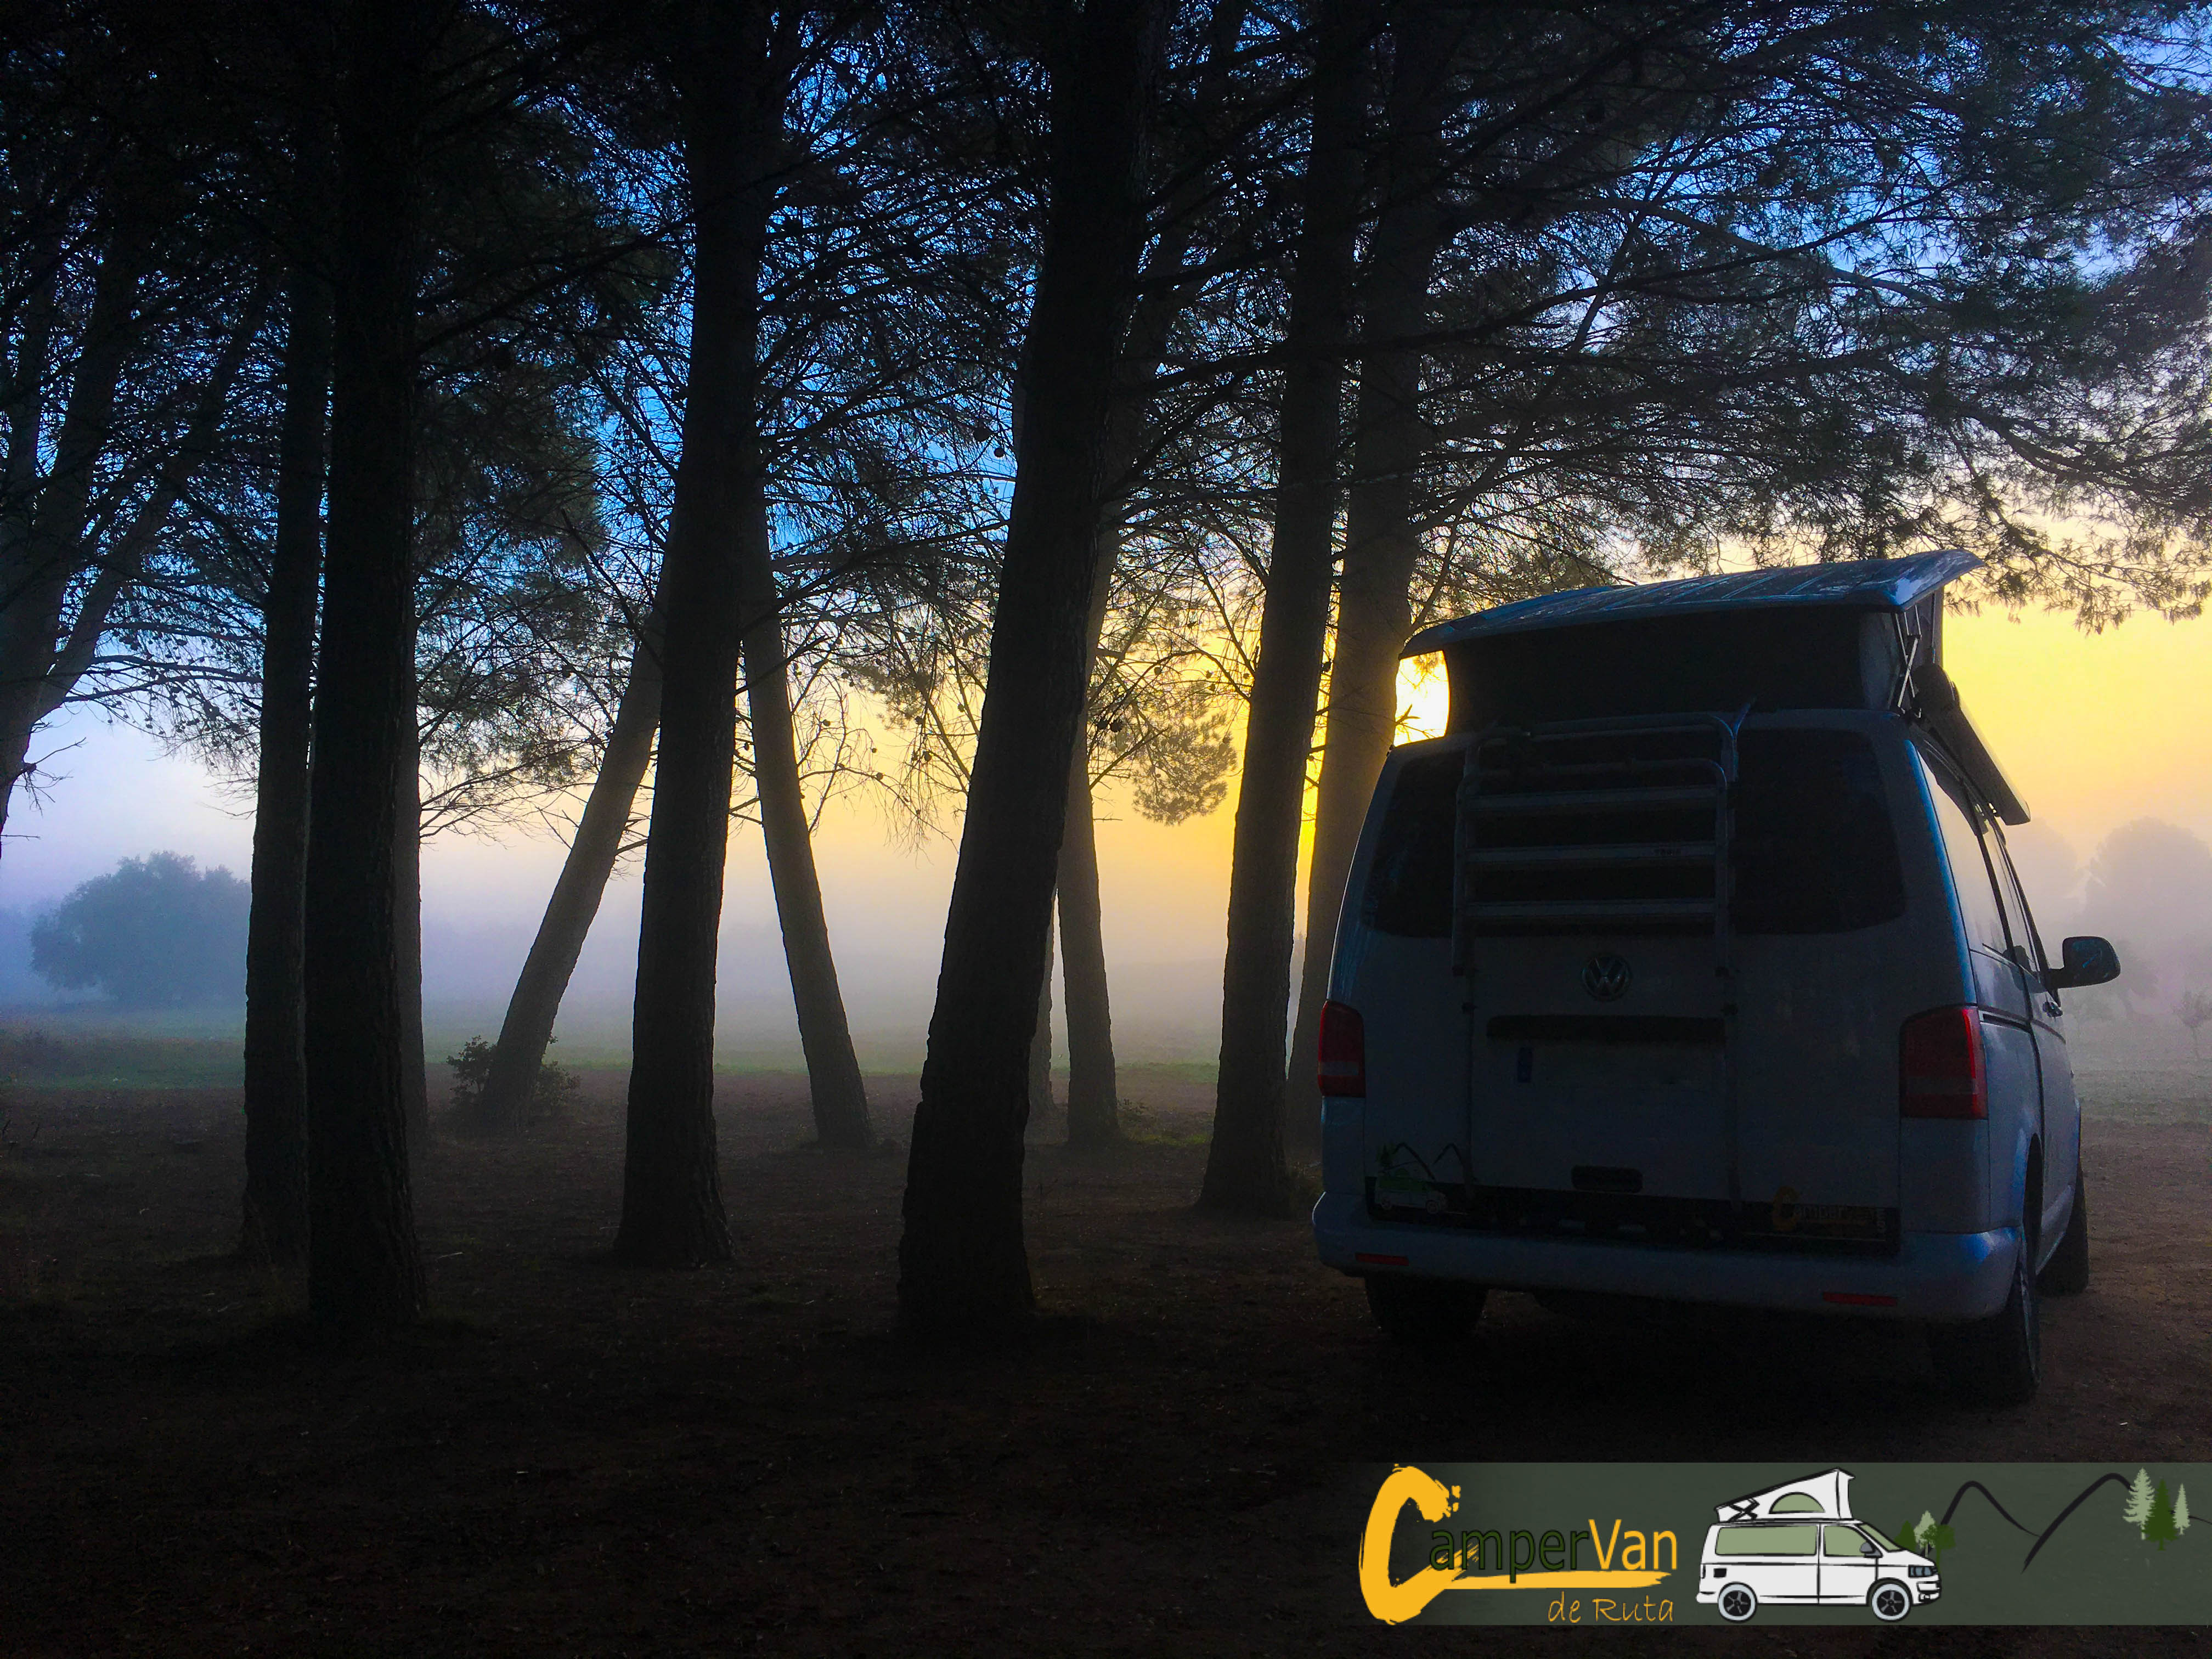 Campervan in a foggy, colorful forest